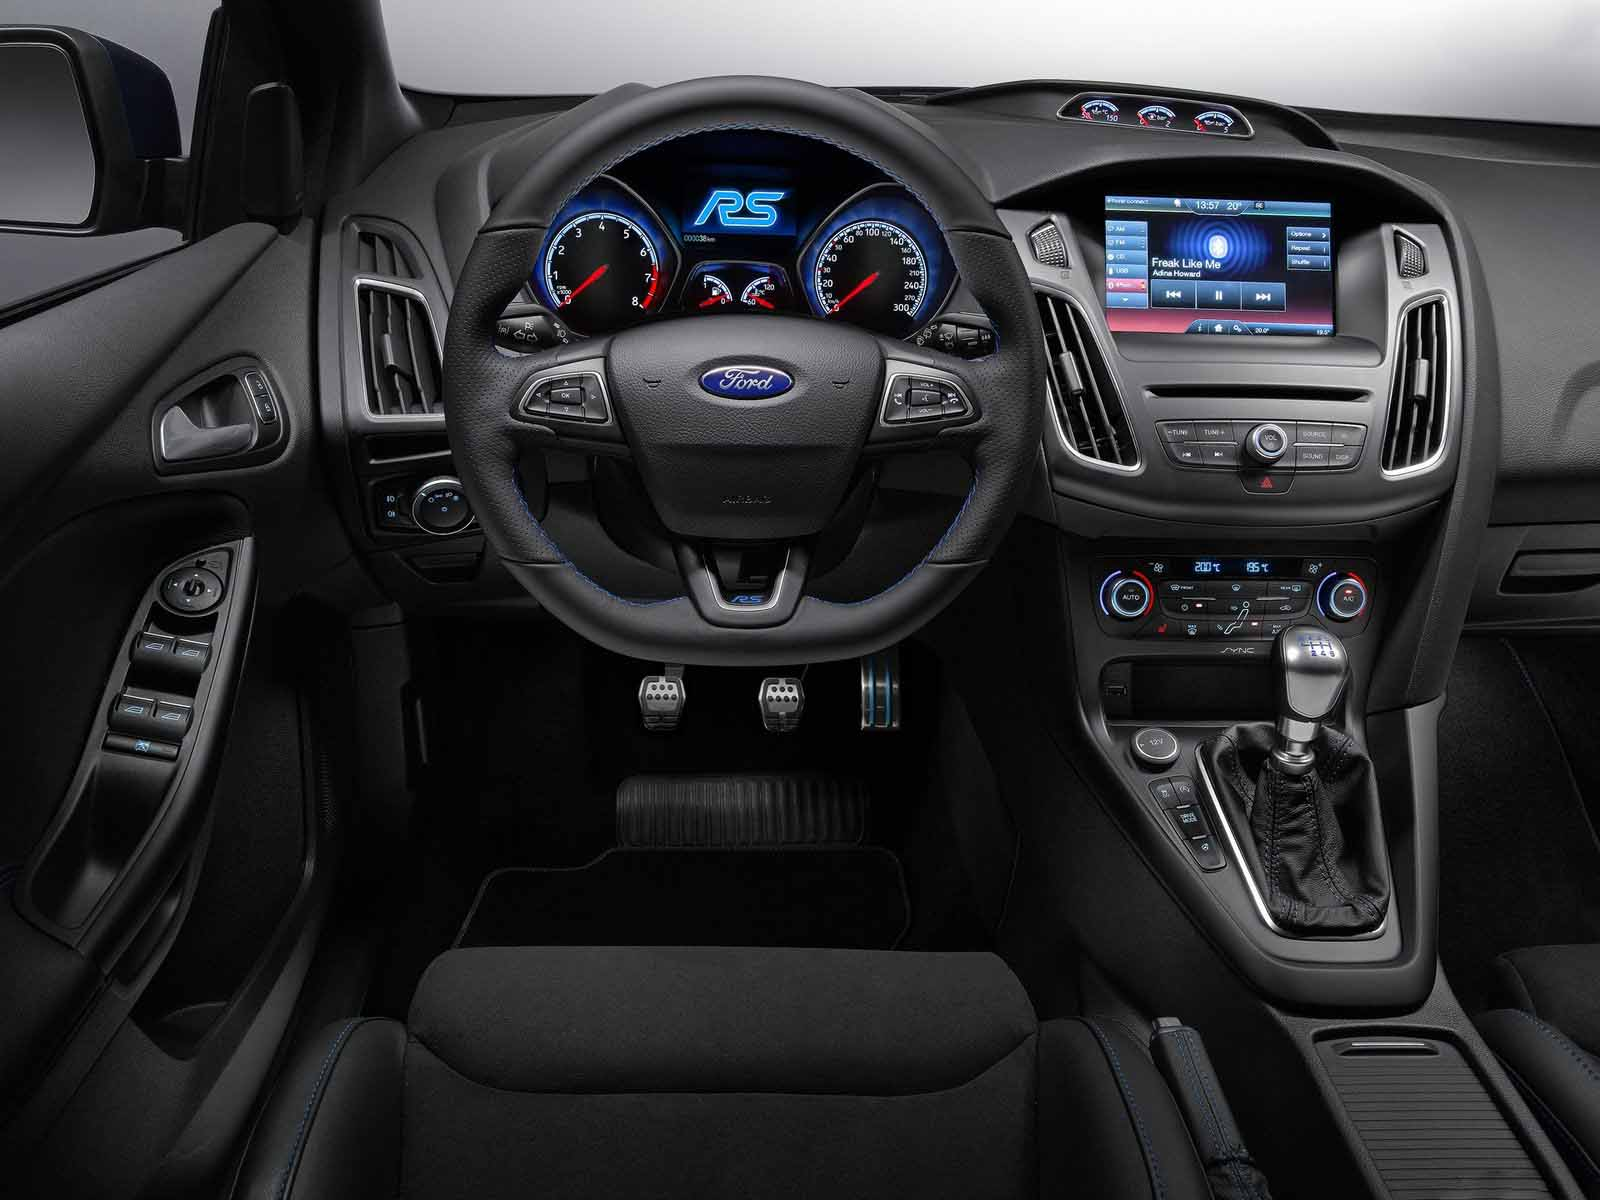 Novo Ford Focus 2016 interior